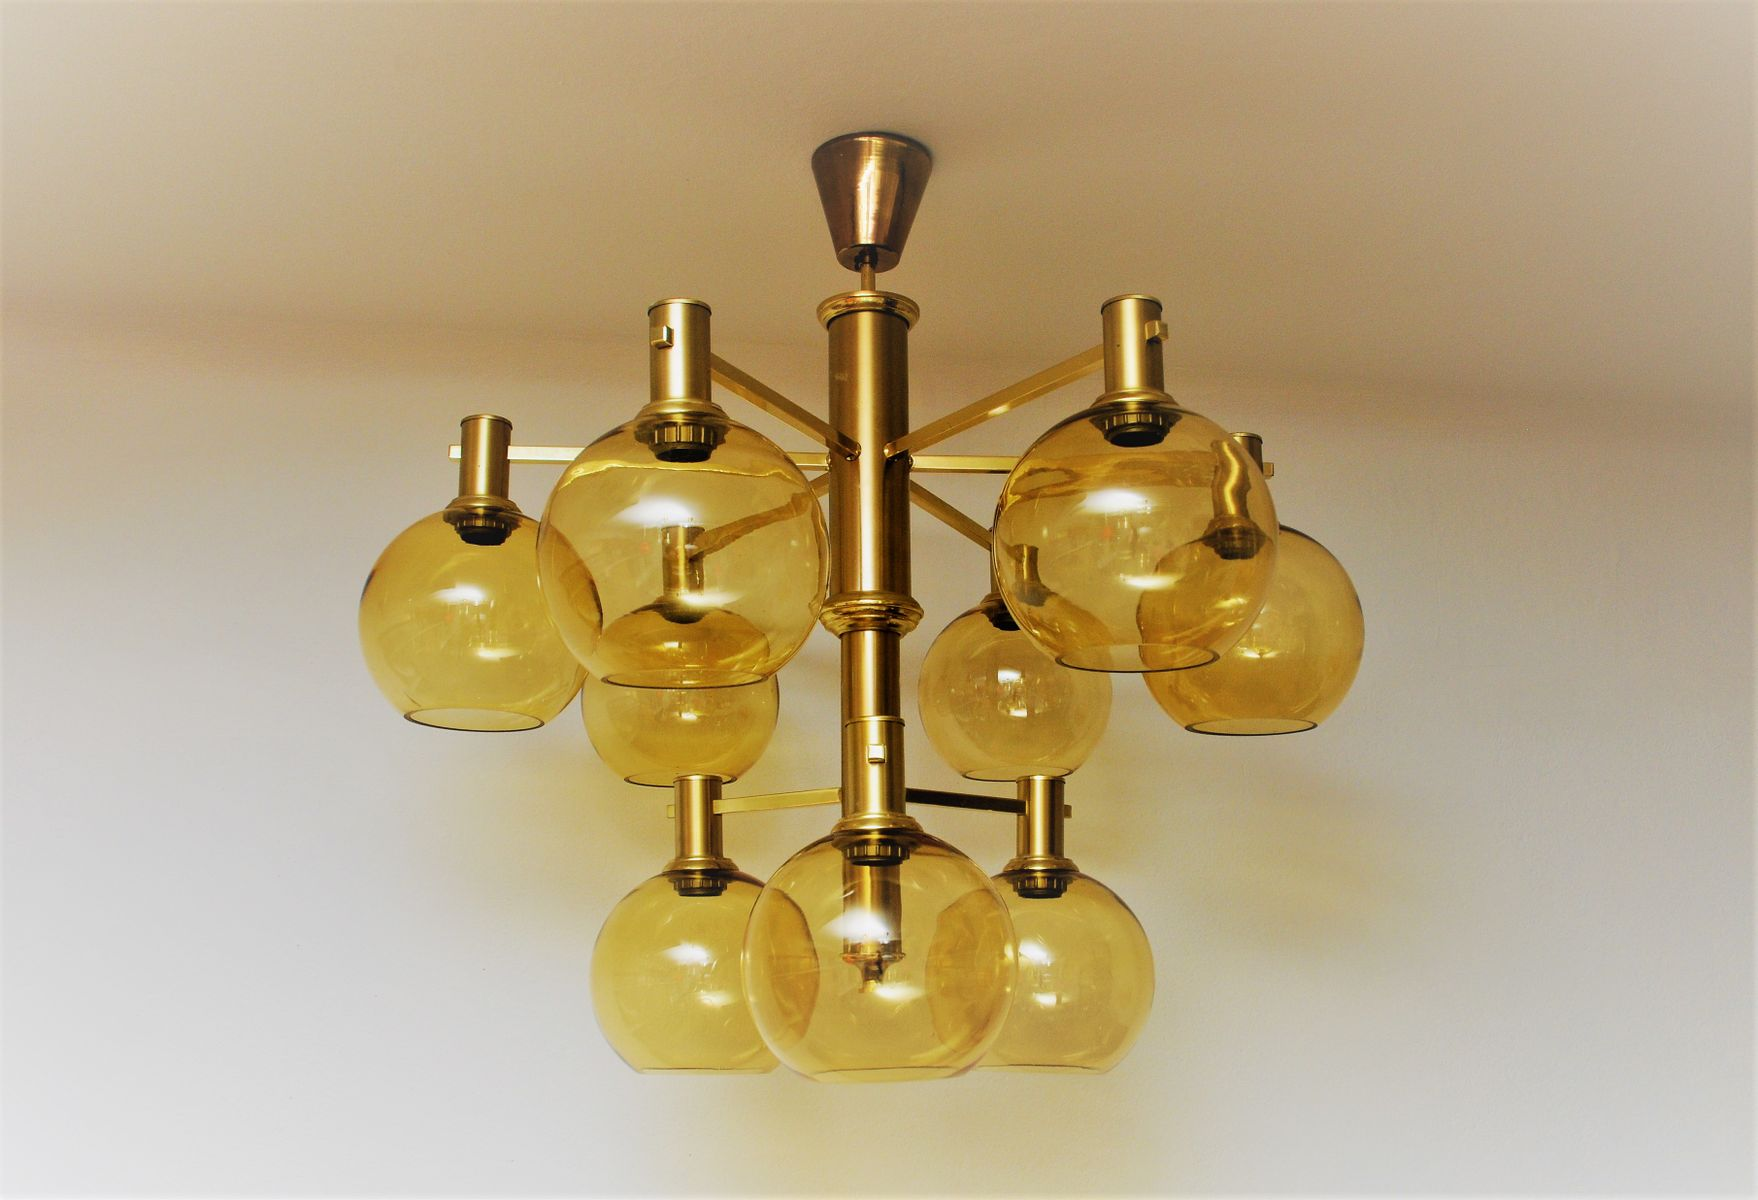 Large Vintage Ceiling Lights : Large vintage brass and glass ceiling lamp for sale at pamono